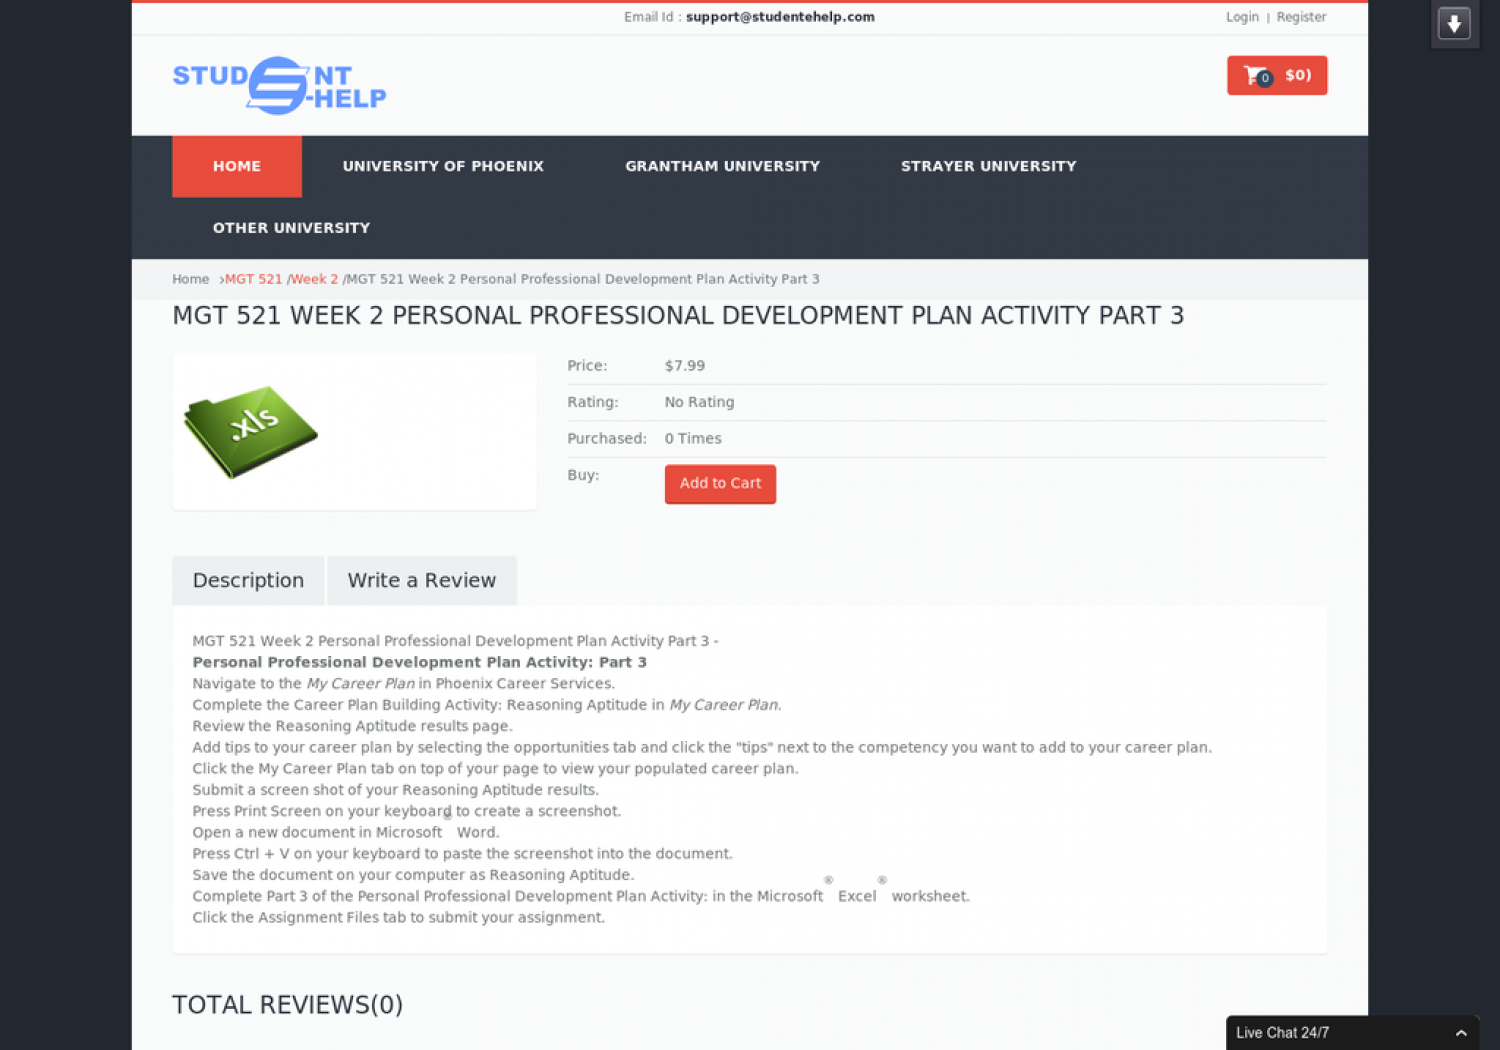 mgt 521 week 1 personal professional Mgt 521 uop course tutorial/shoptutorial  and measuring performance mgt 521 week 6 individual personal professional development plan mgt 521 week.